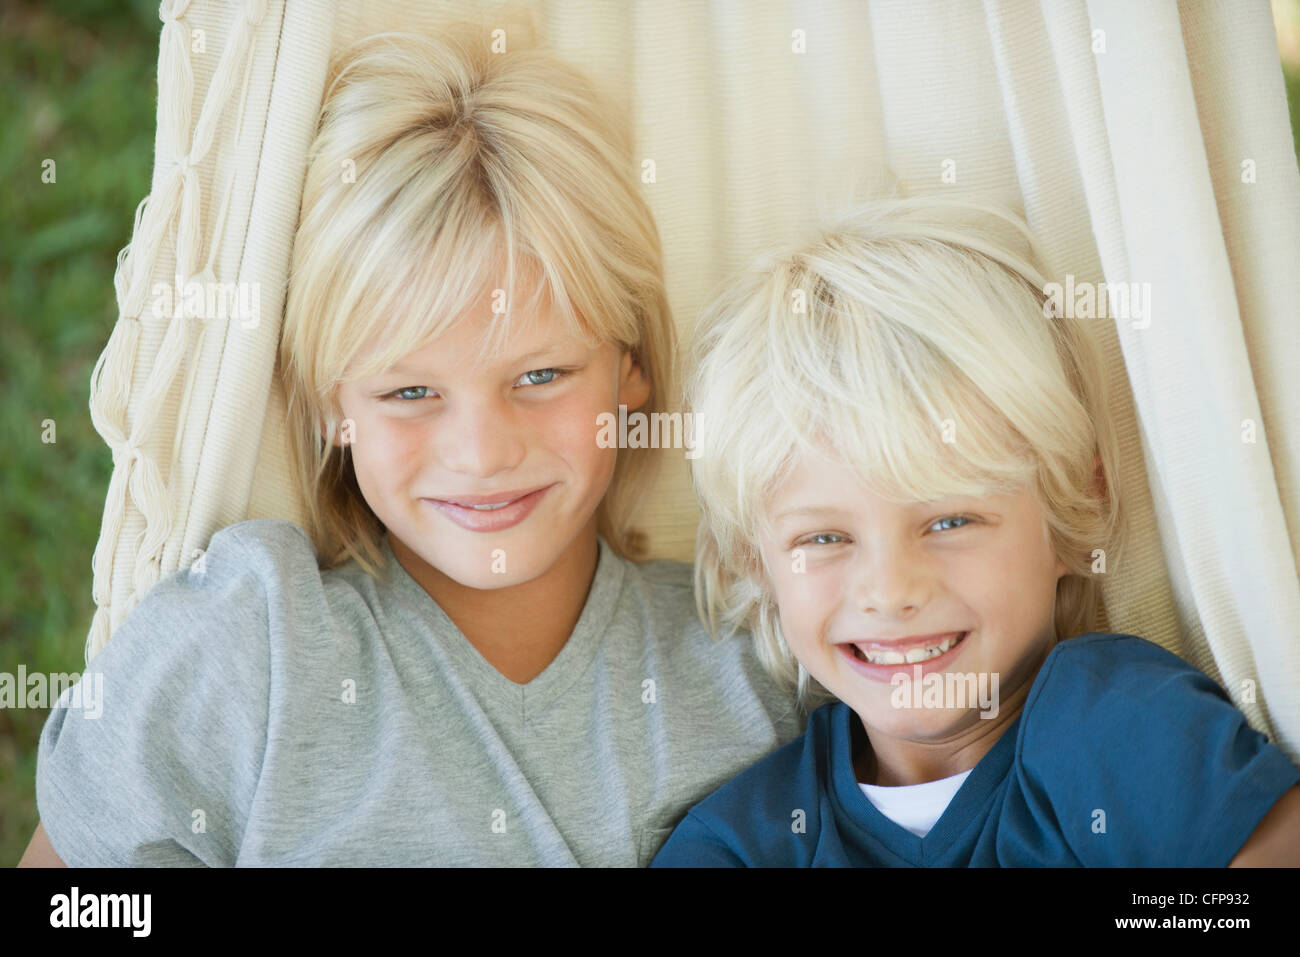 Young brothers, portrait - Stock Image